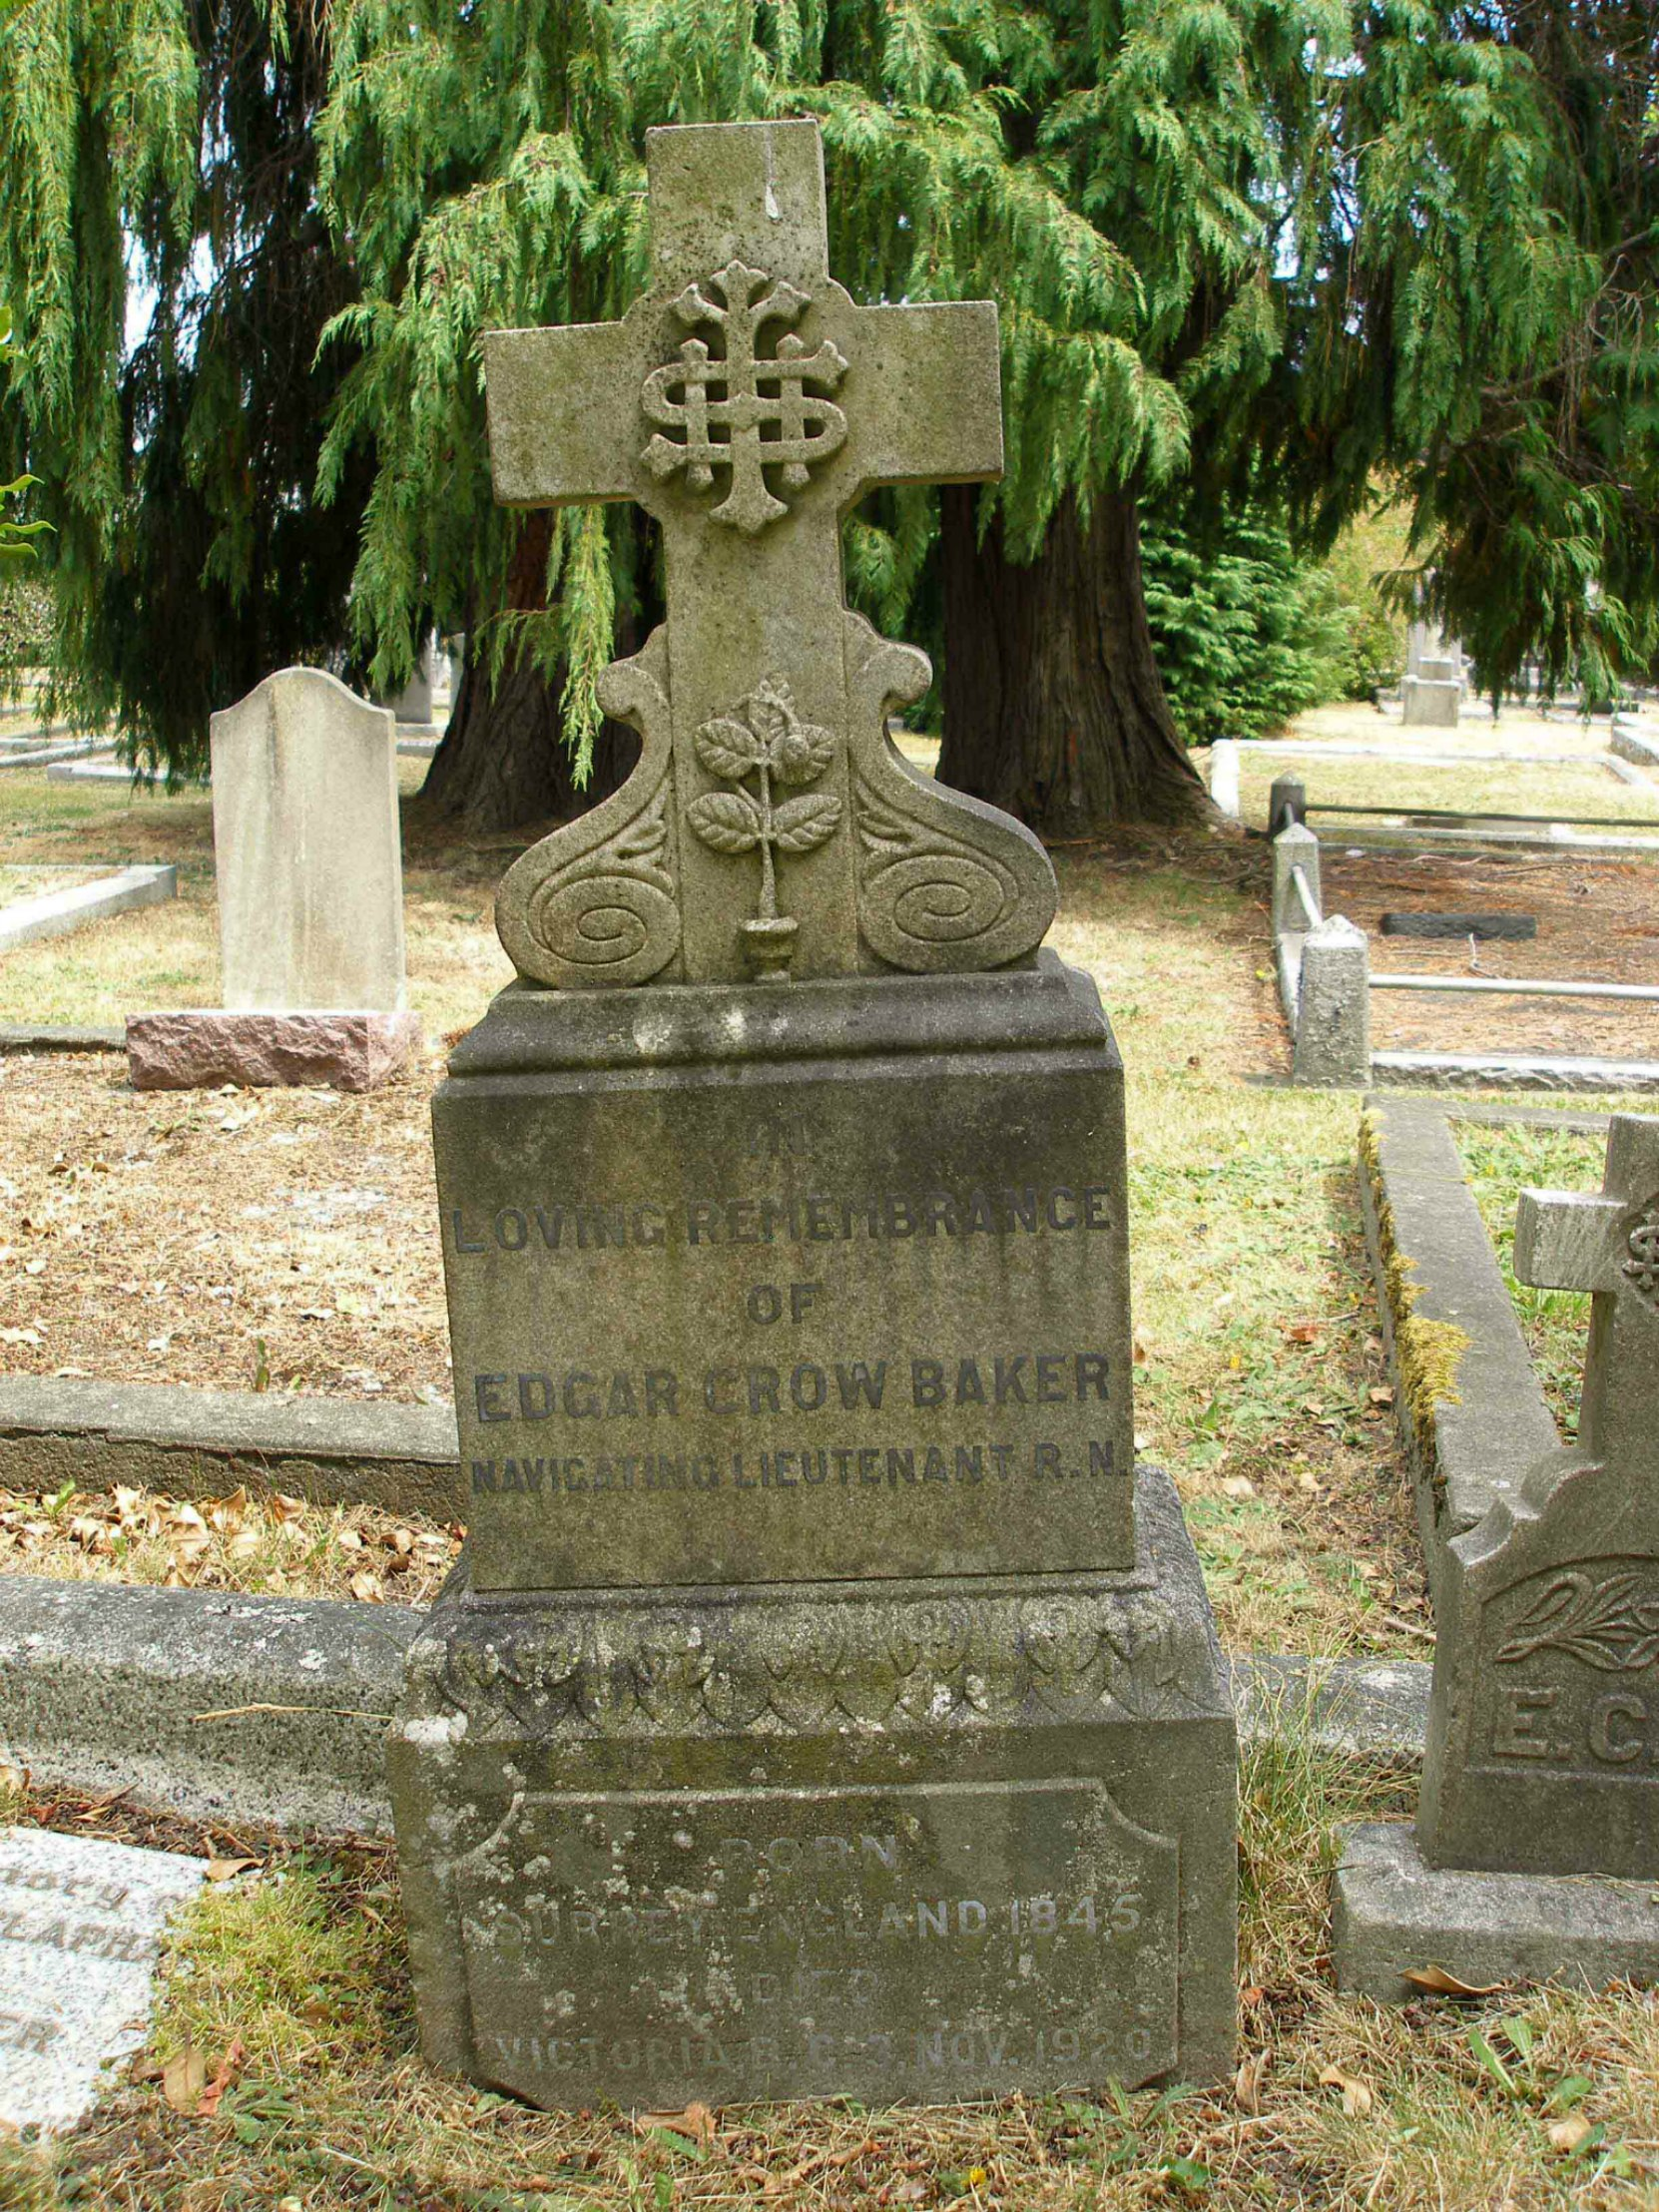 Edgar Crow Baker headstone. Ross Bay Cemetery, Victoria, B.C.